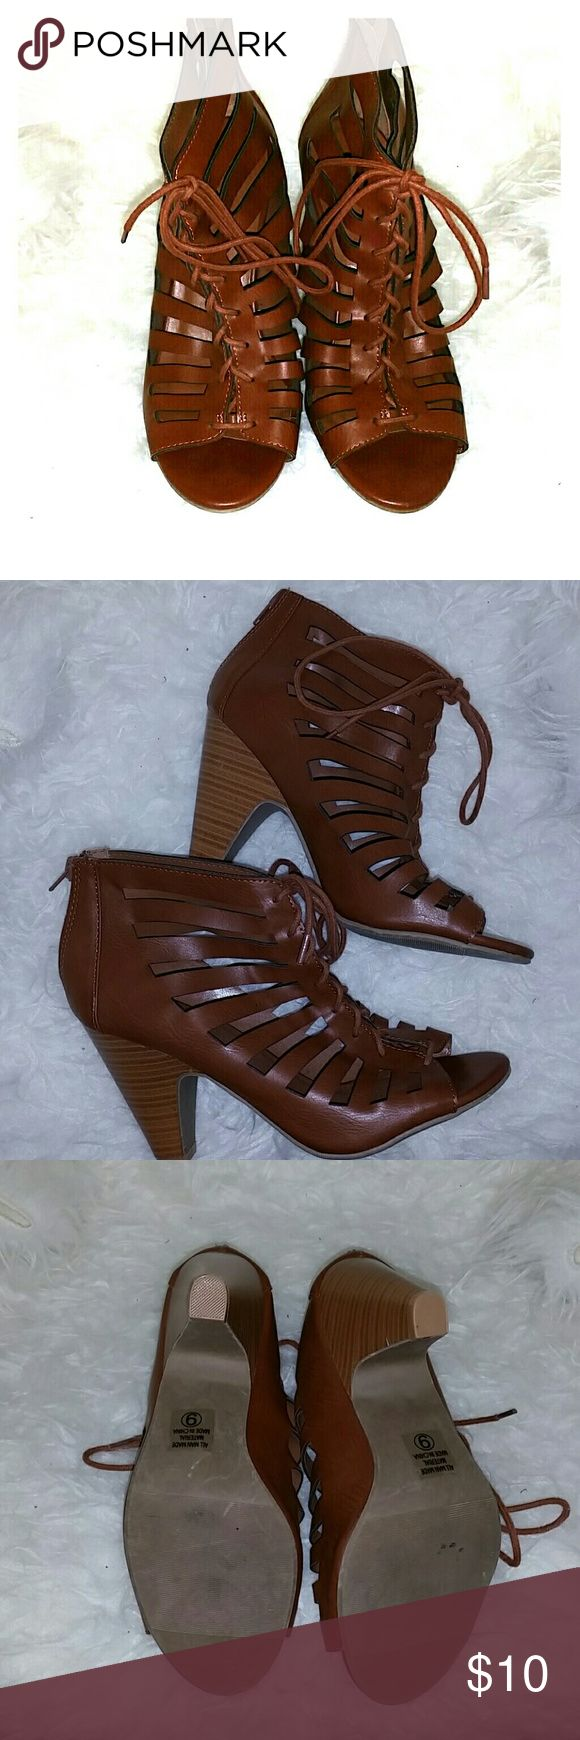 NEW Lace Up Sandal Heels. Pretty brown lace up sandal heels sz. 9. Never use only tried on.  Too big for me. Shoes Heels